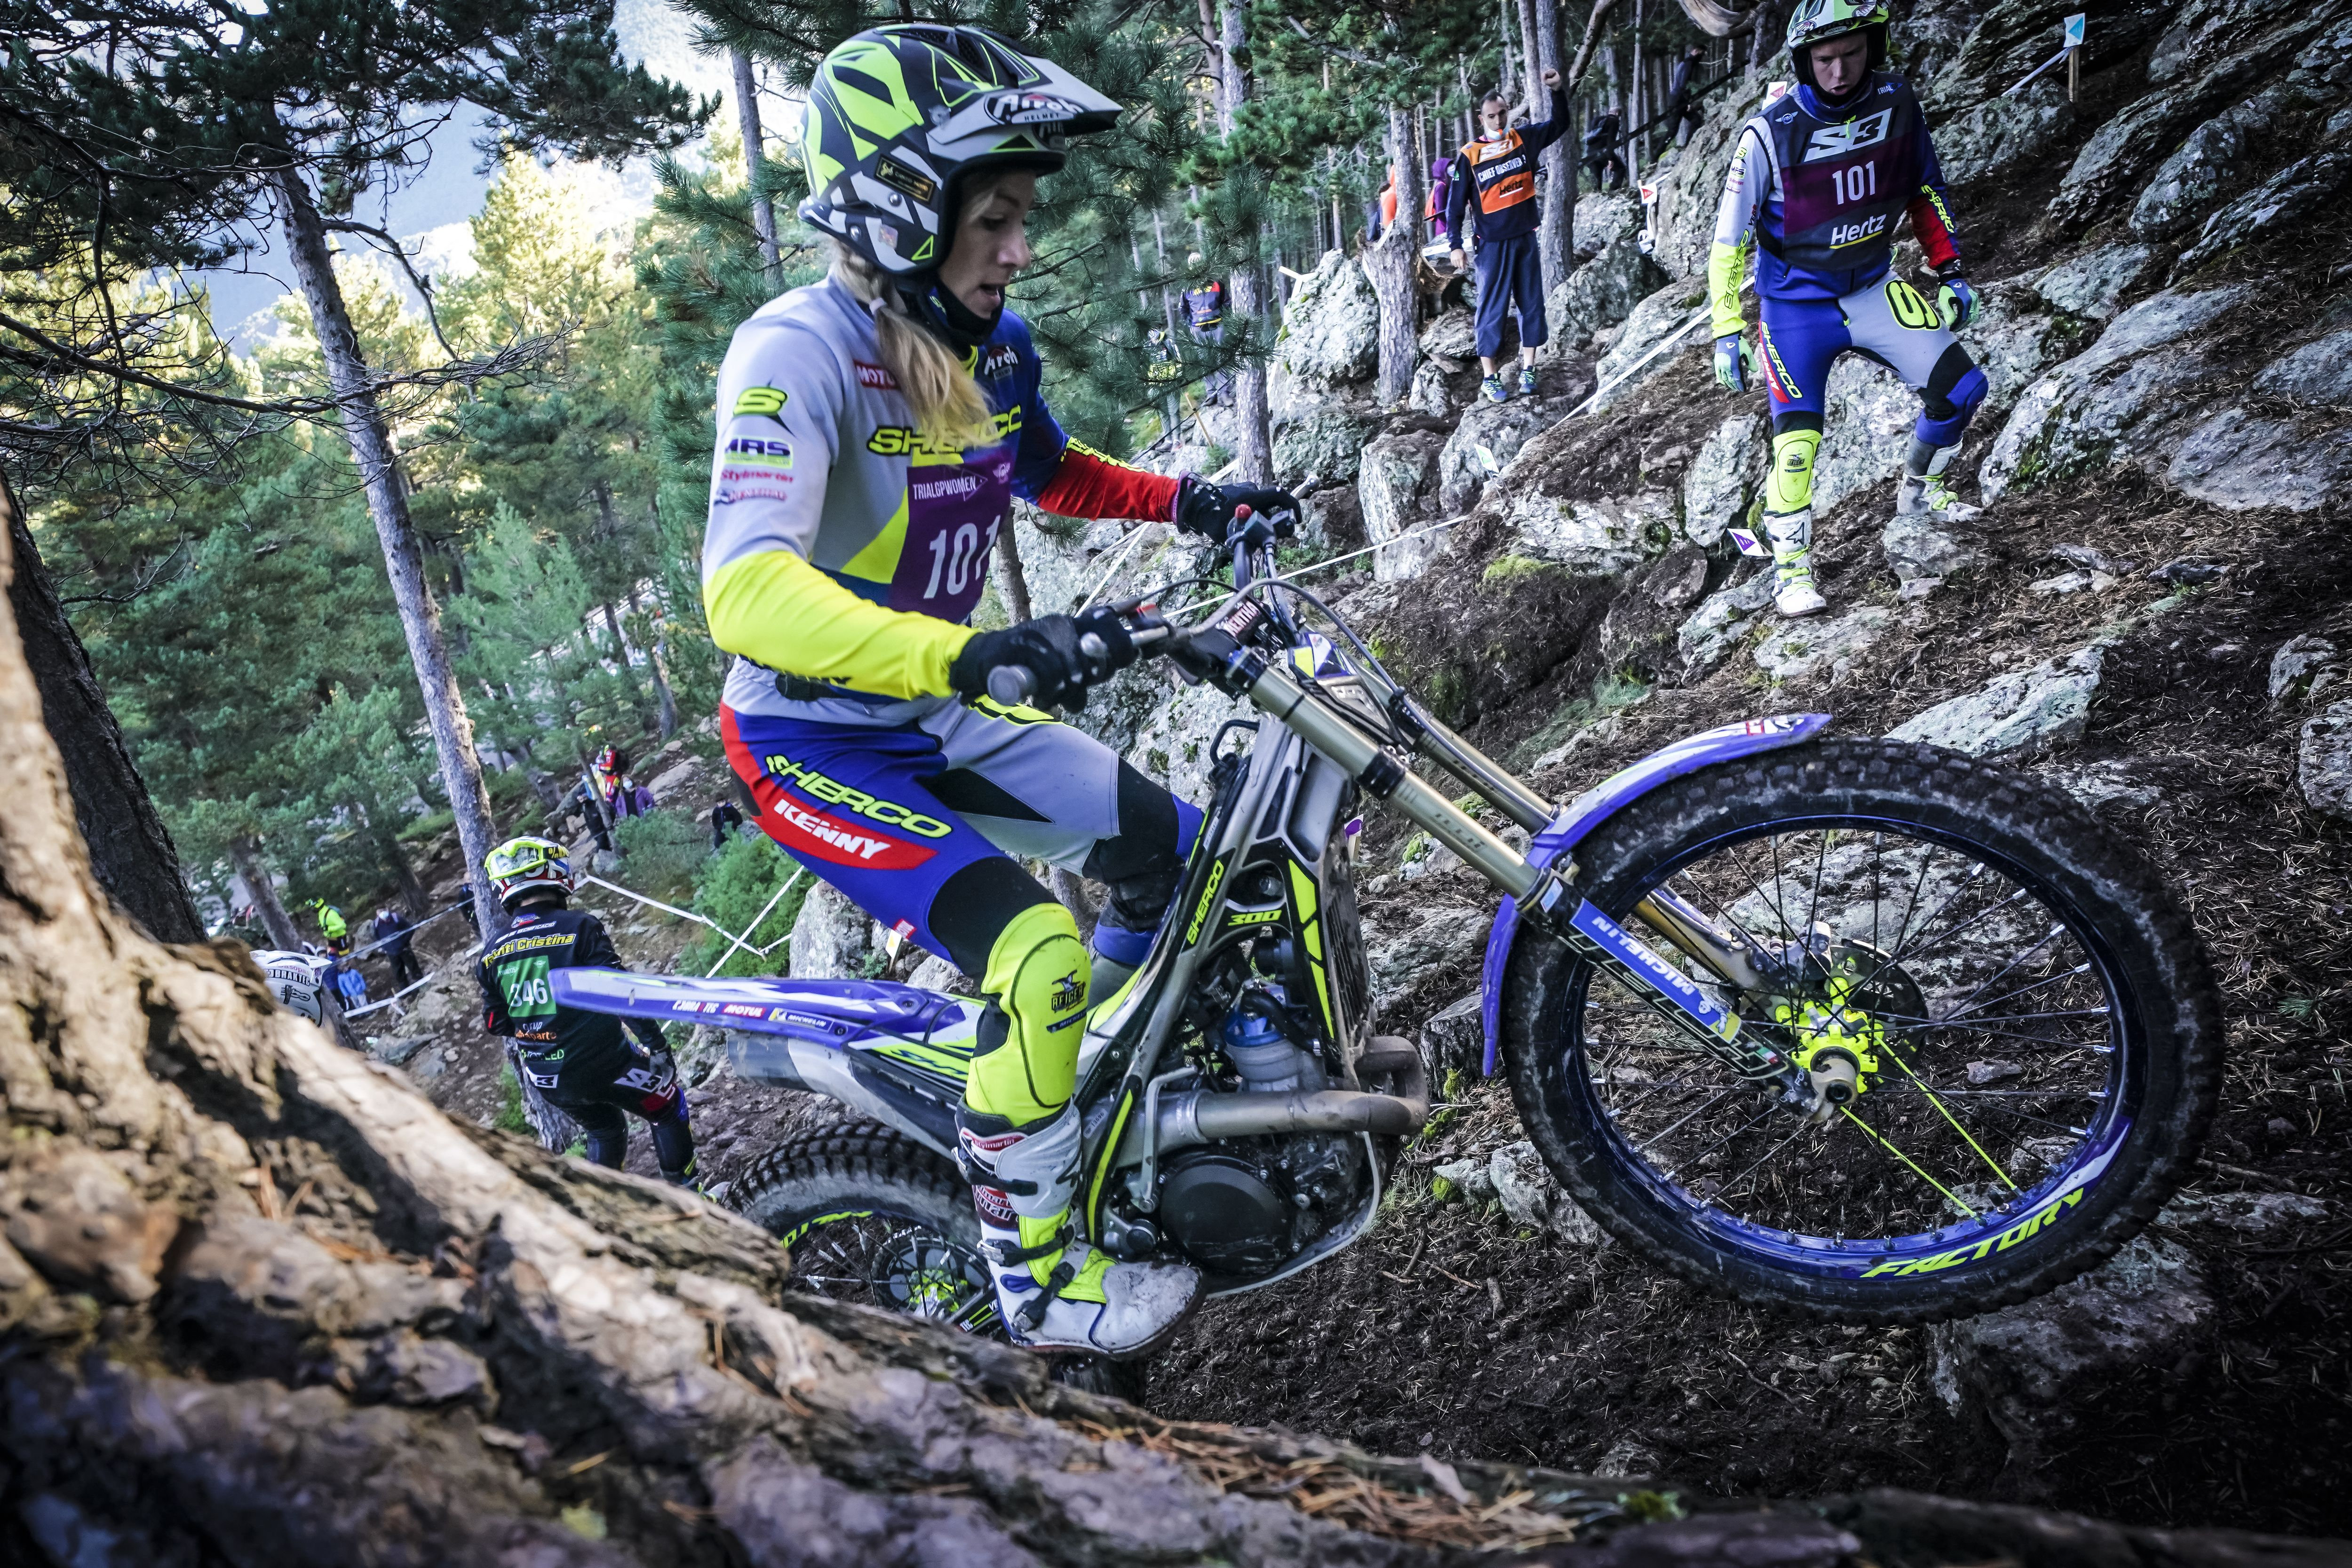 FIM Women's Trial World Championship